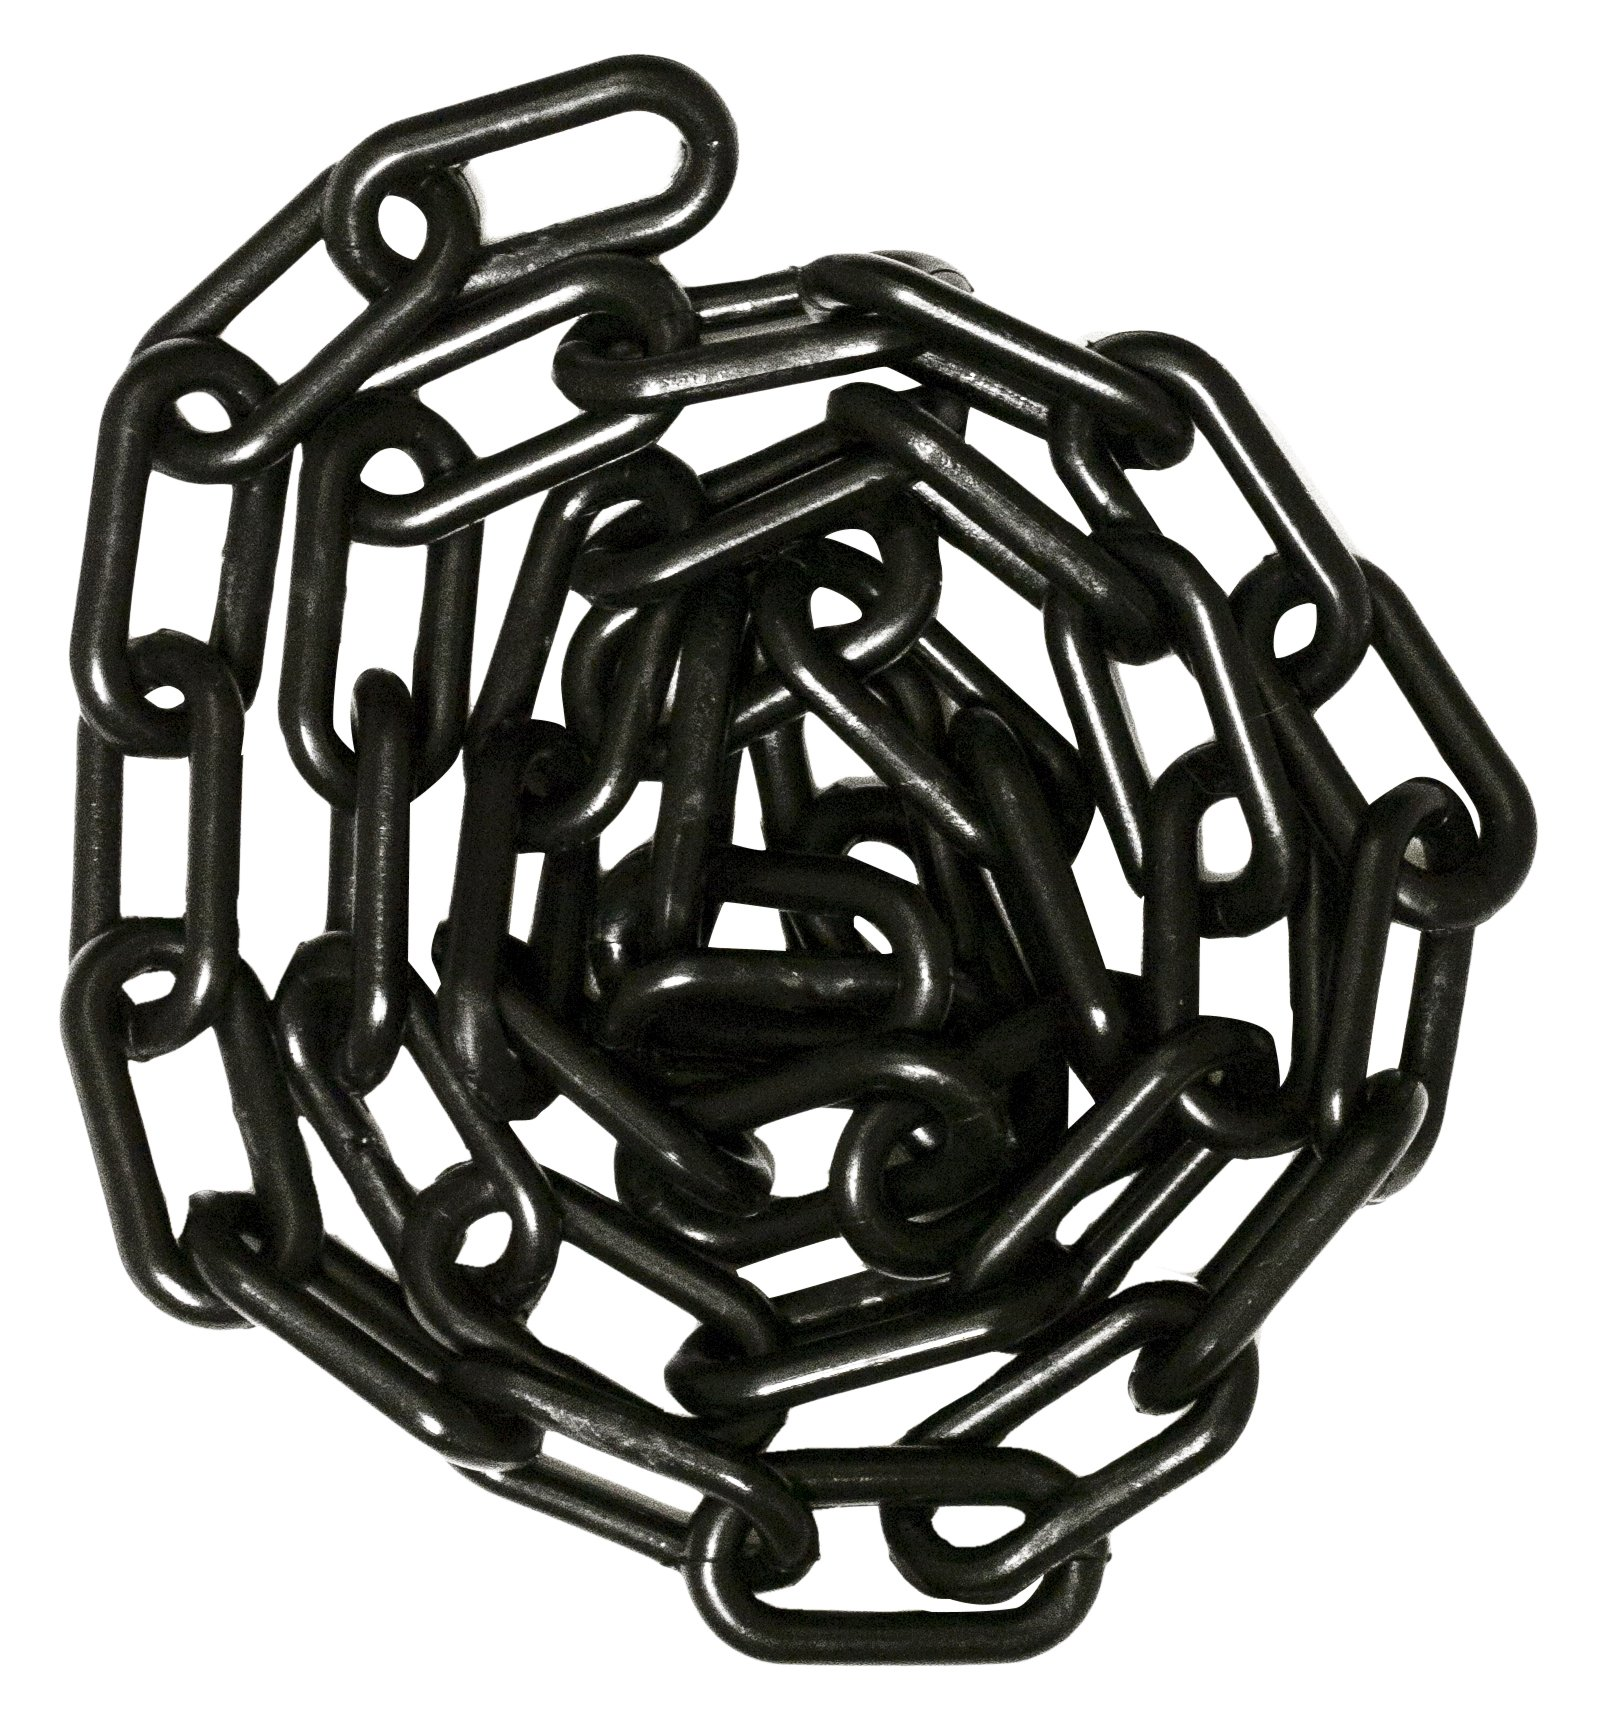 Mr. Chain 30003-25 Plastic Barrier Chain, High Density Polyethylene with UV Inhibitors, 1.5'' Link x 25', Black by Mr. Chain